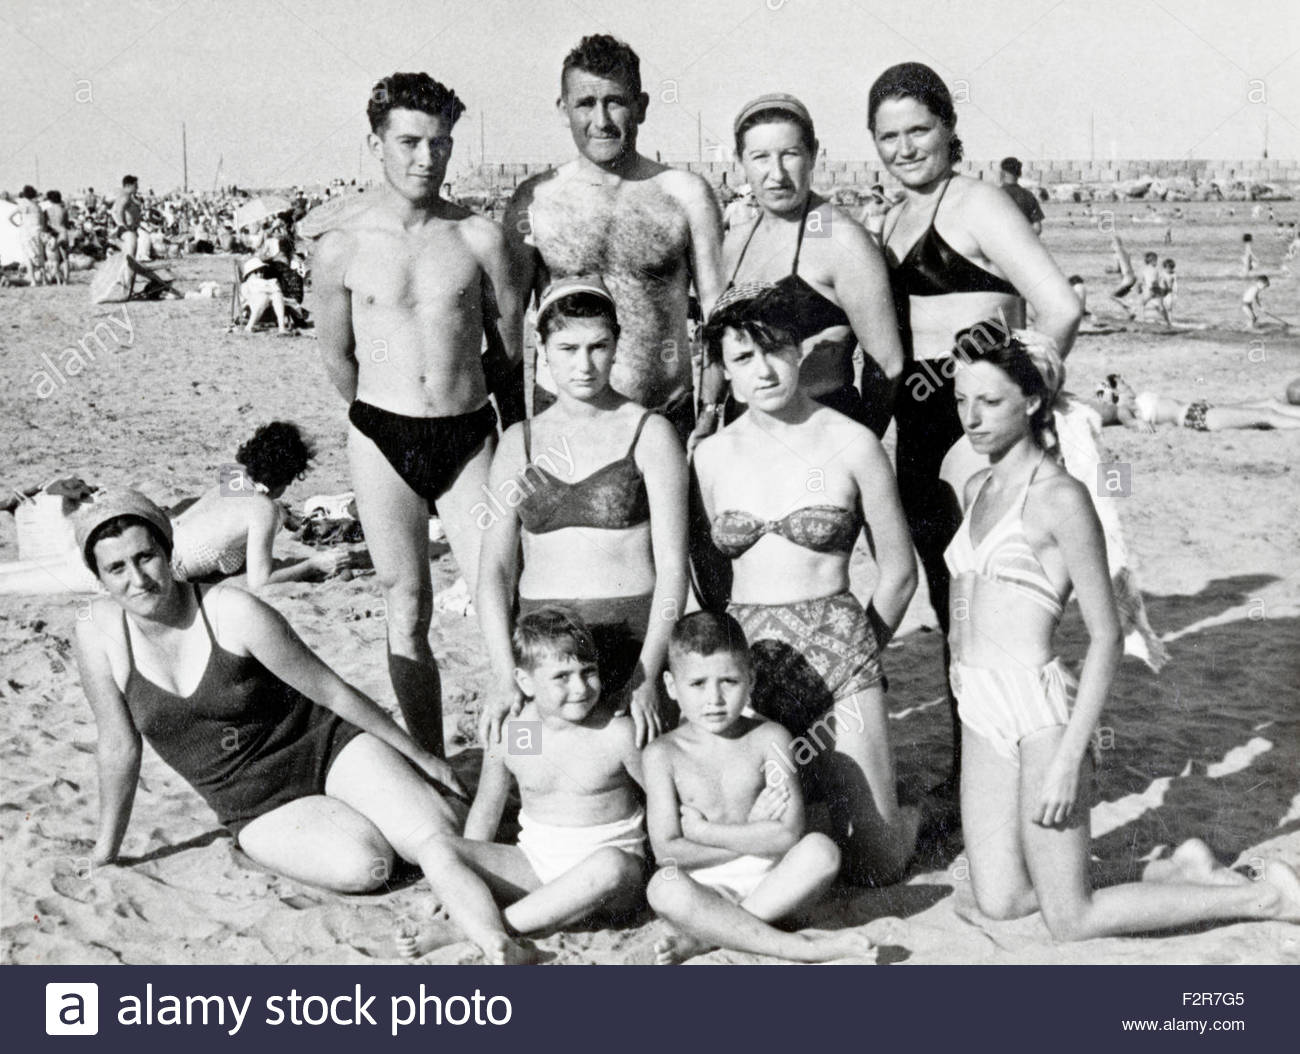 family and friends summer vacation snapshot France 1950s - Stock Image